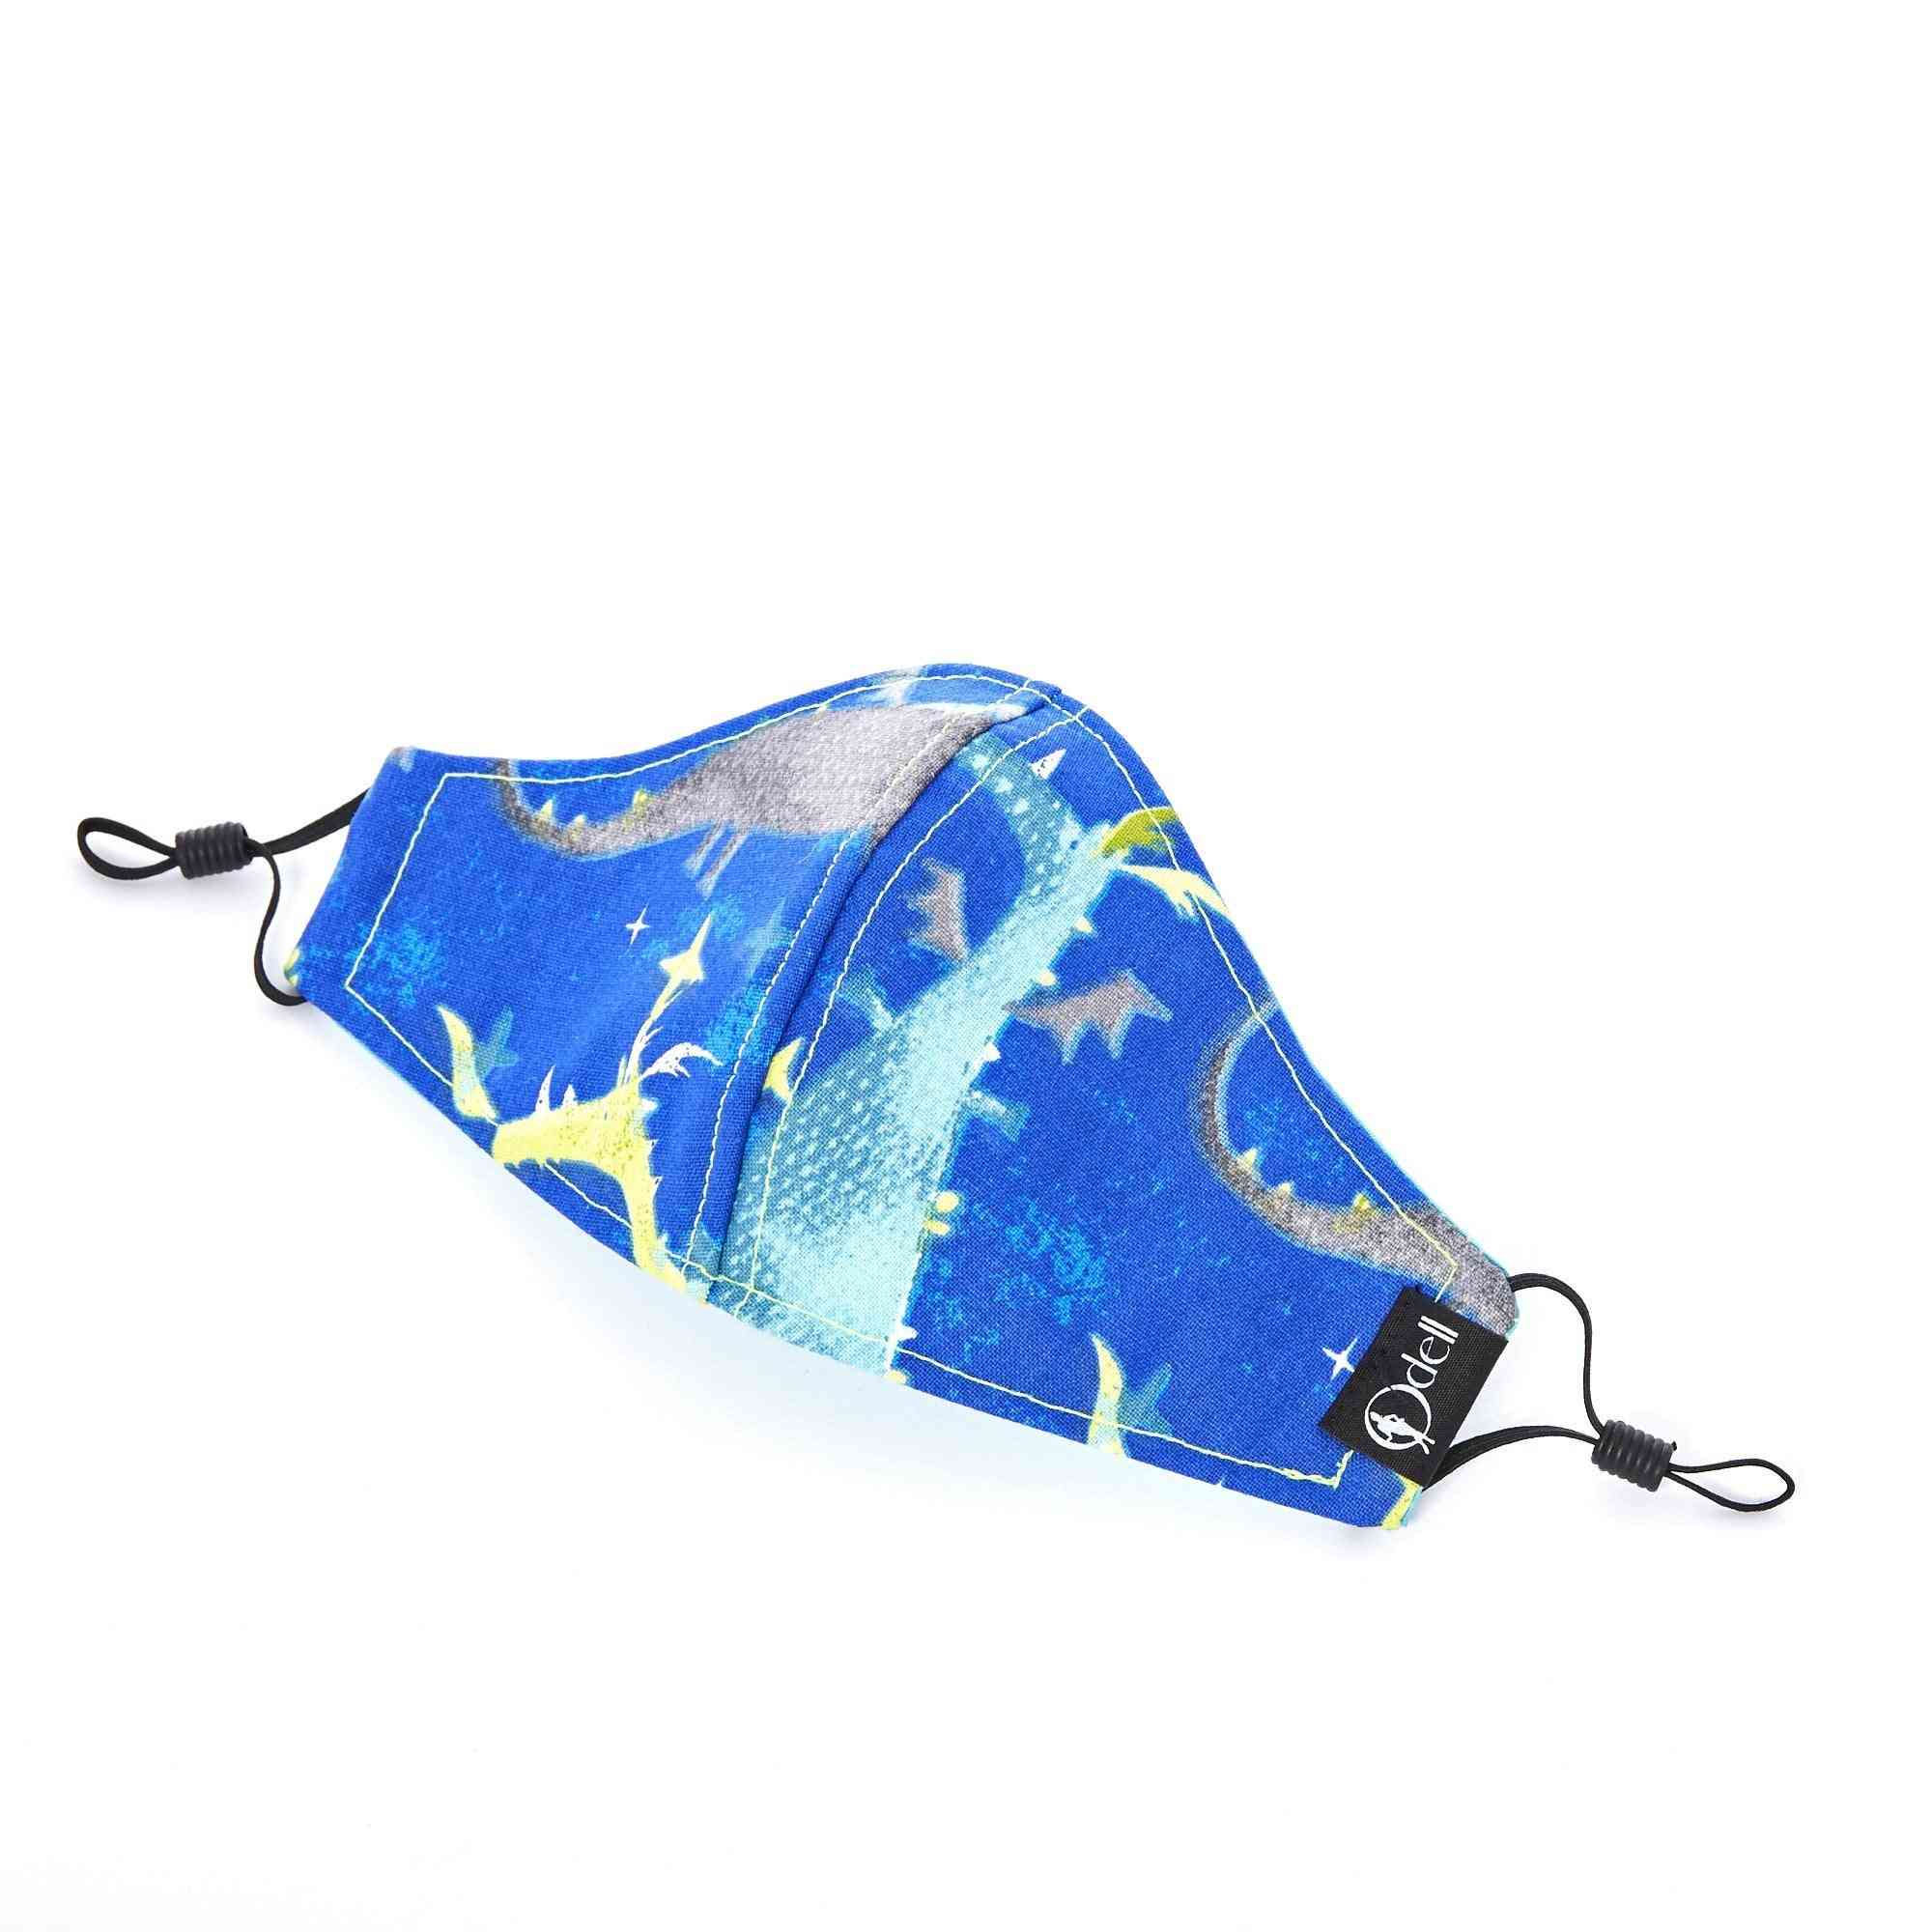 Kids Cotton Cloth, Light-weight, Breathable Mouth Mask